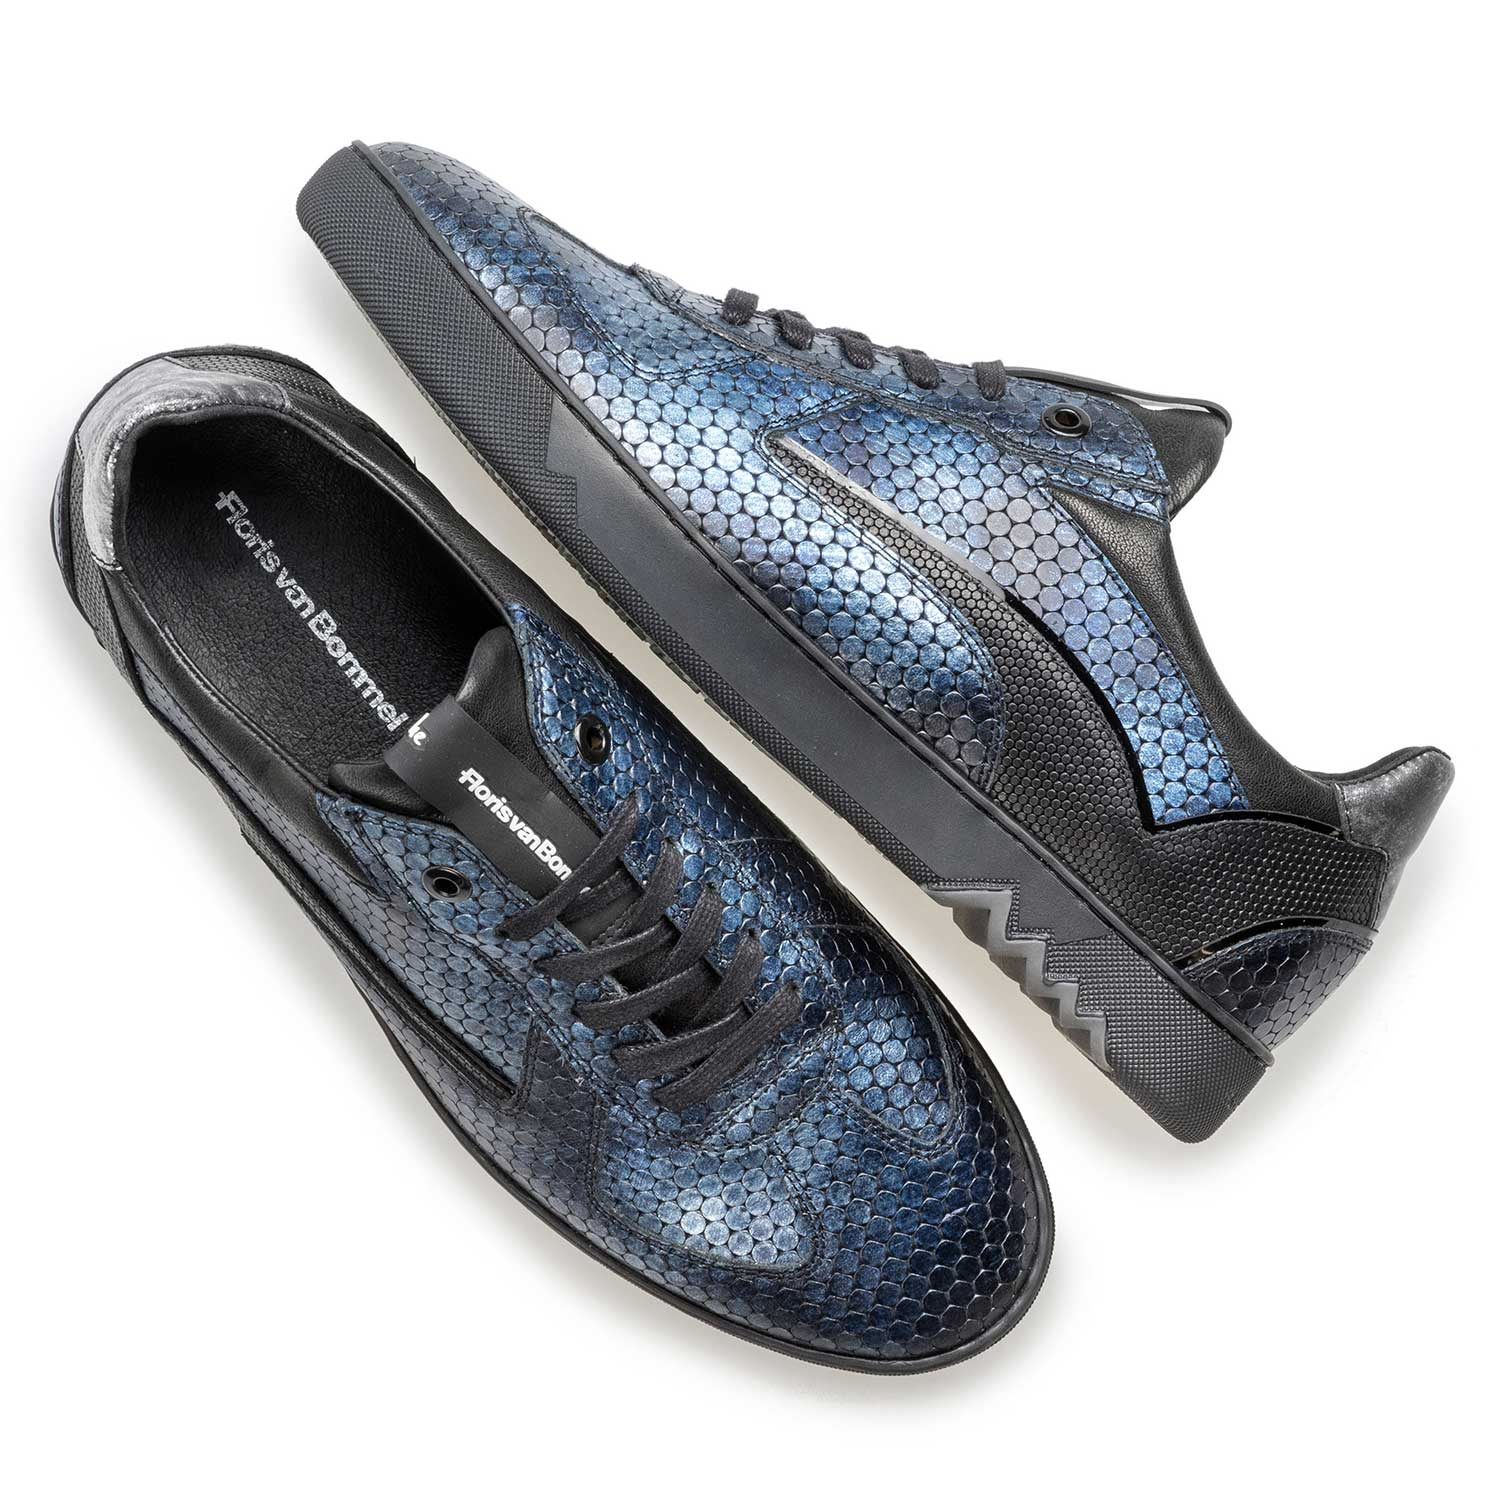 16242/11 - Blue metallic print leather sneaker